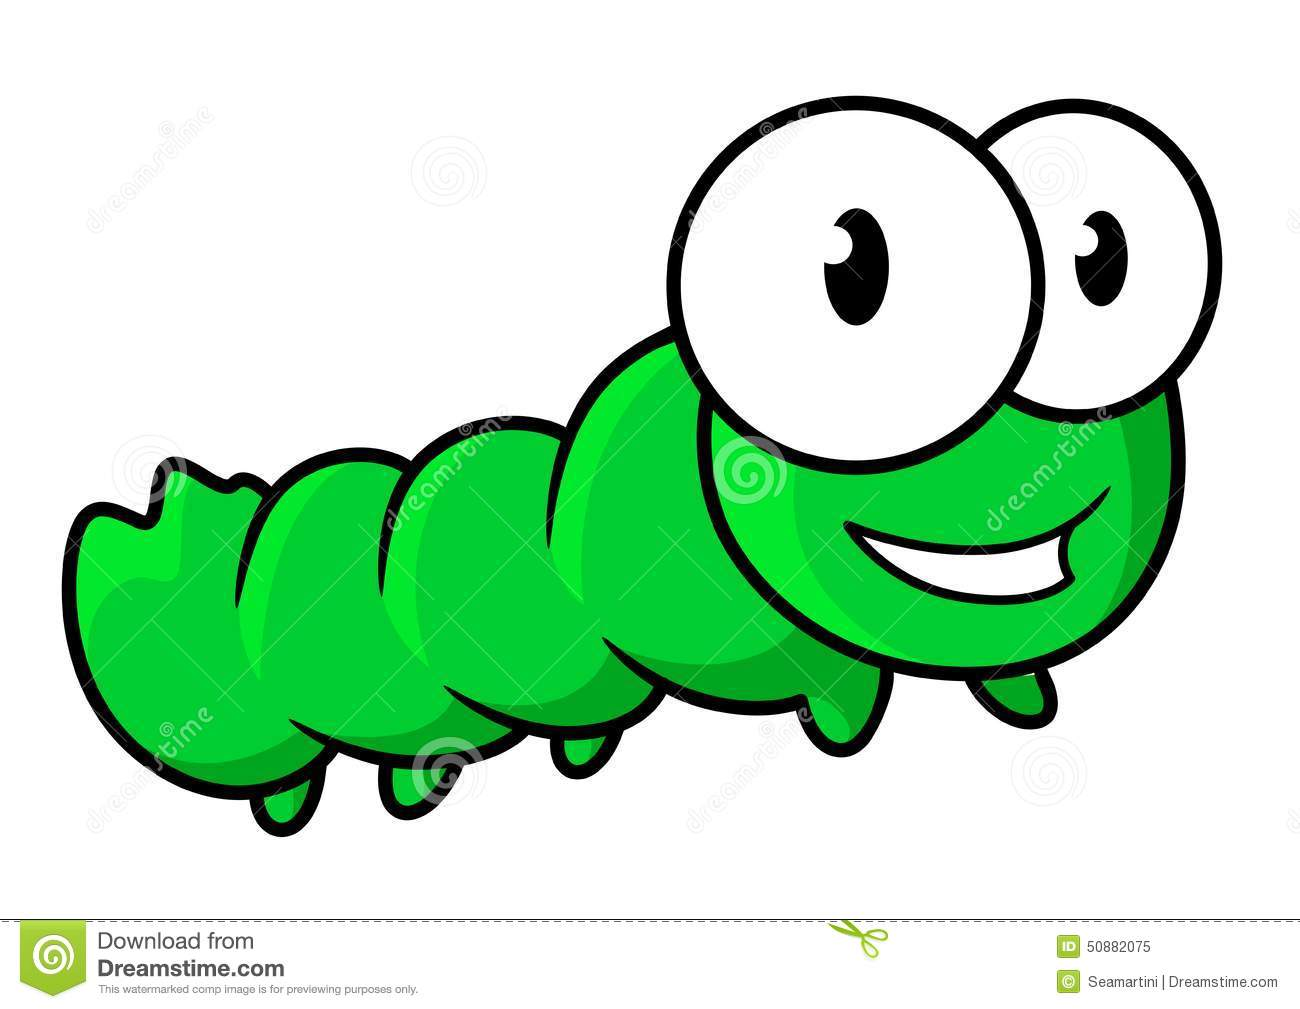 A Cartoon Character That Is Green : Cute green caterpillar insect cartoon character stock